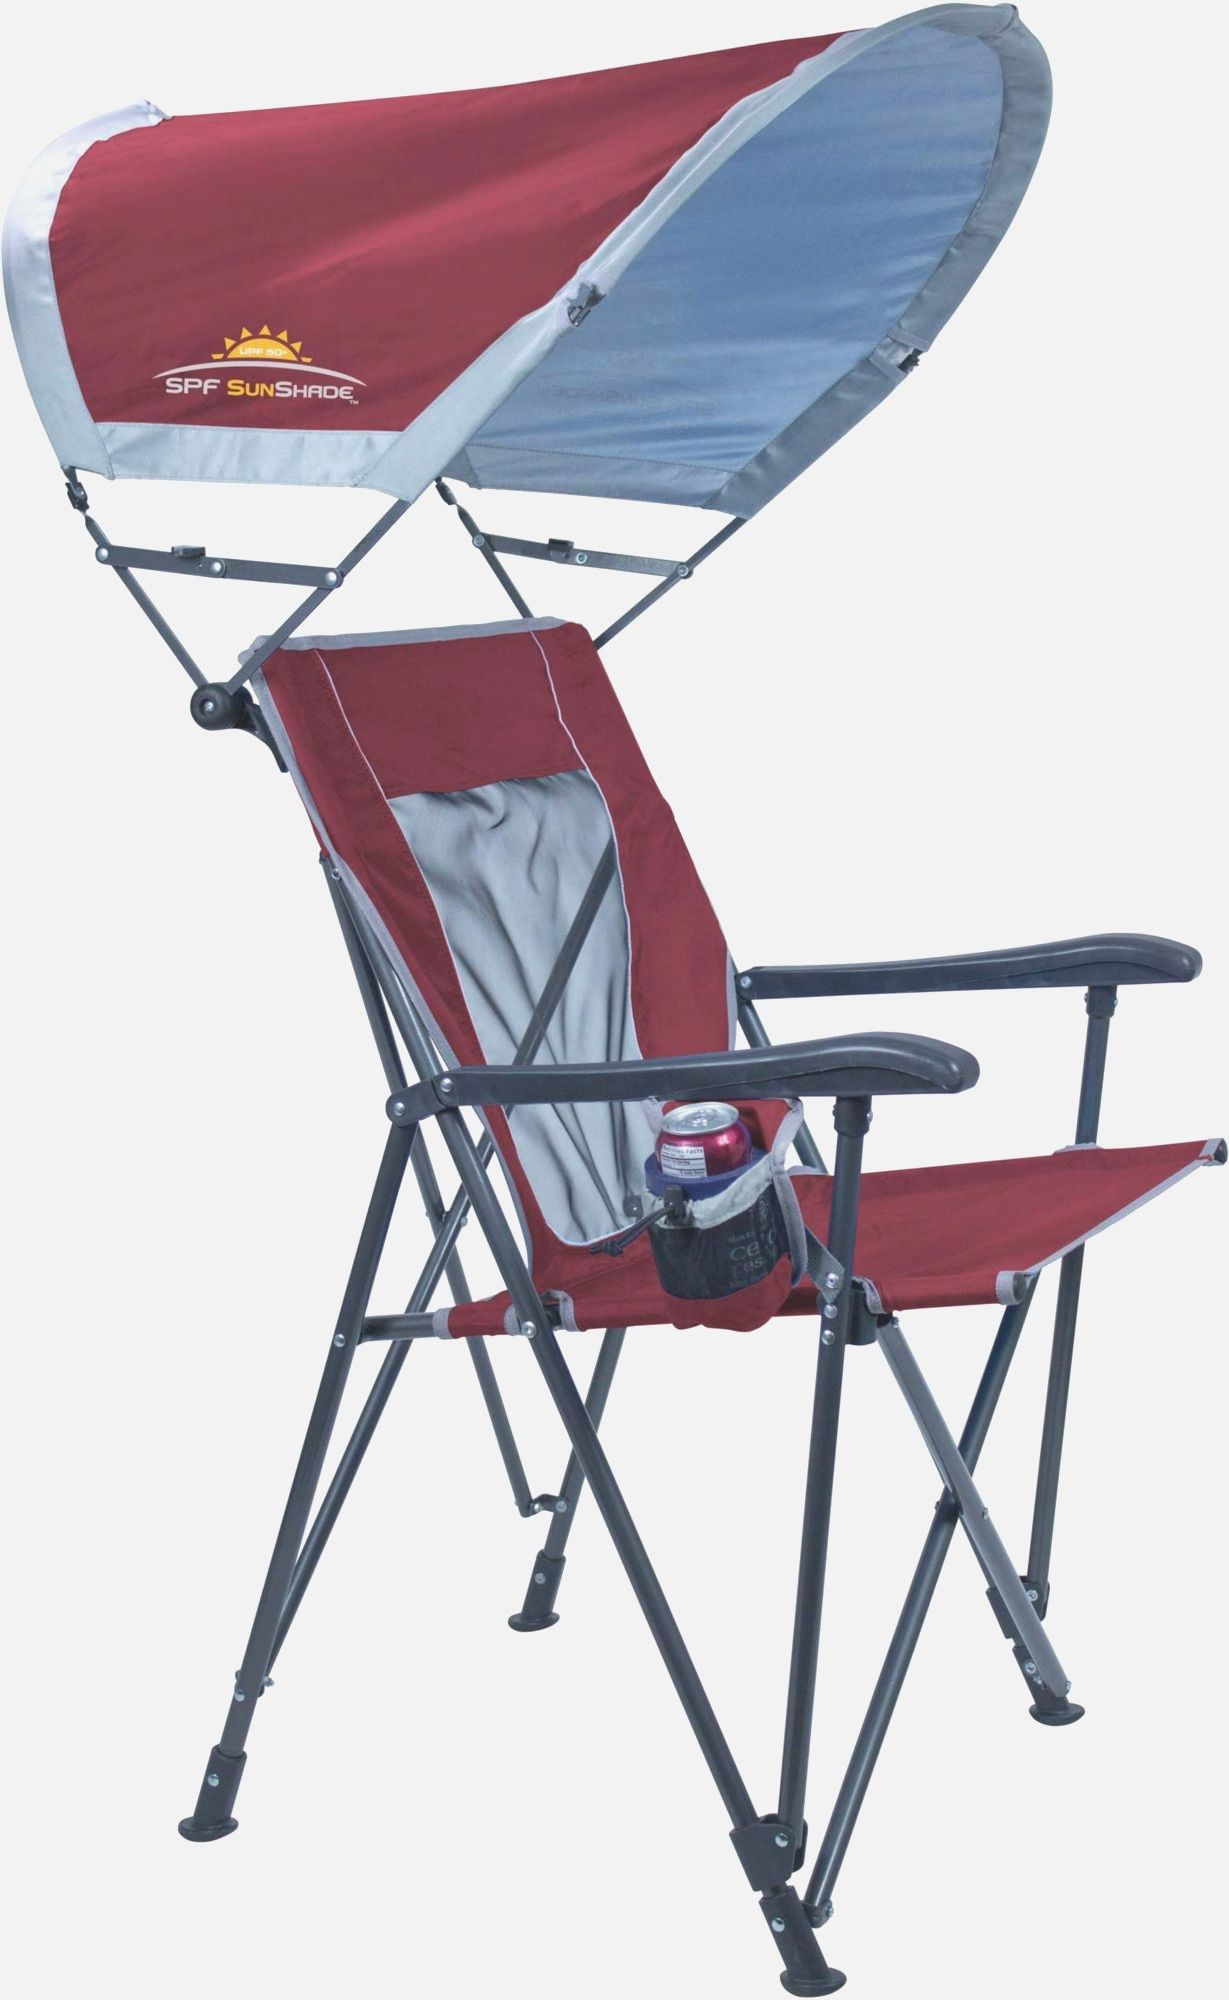 Captivating Big And Tall Lawn Chairs   Big And Tall Folding Lawn Chairs, Big And Tall  Lawn Chairs, Big And Tall Lawn Furniture, Big And Tall Patio Chairs, ...